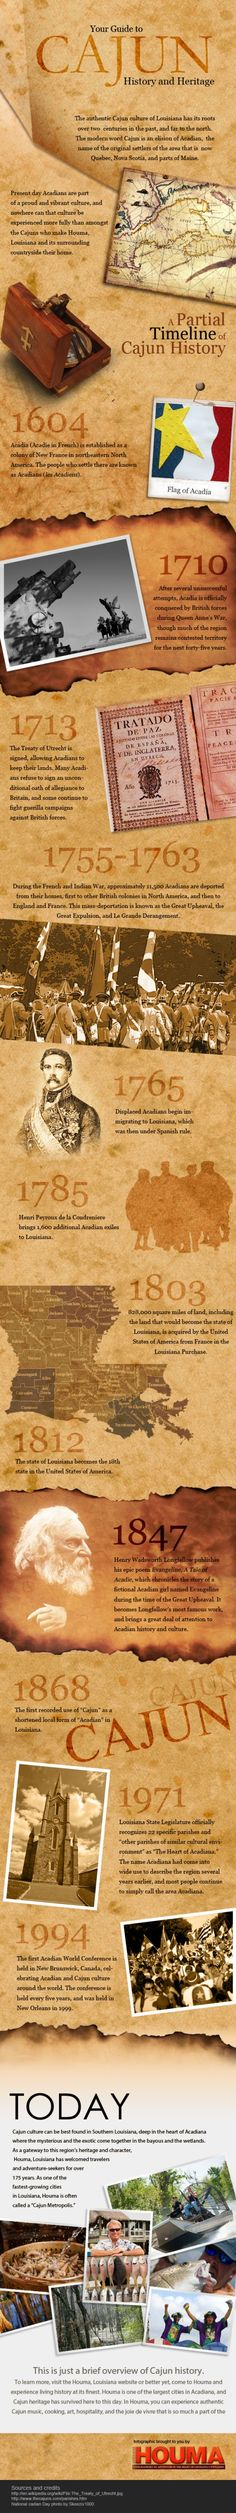 Cajun History and Heritage | Data Point Content by KCWMS.com